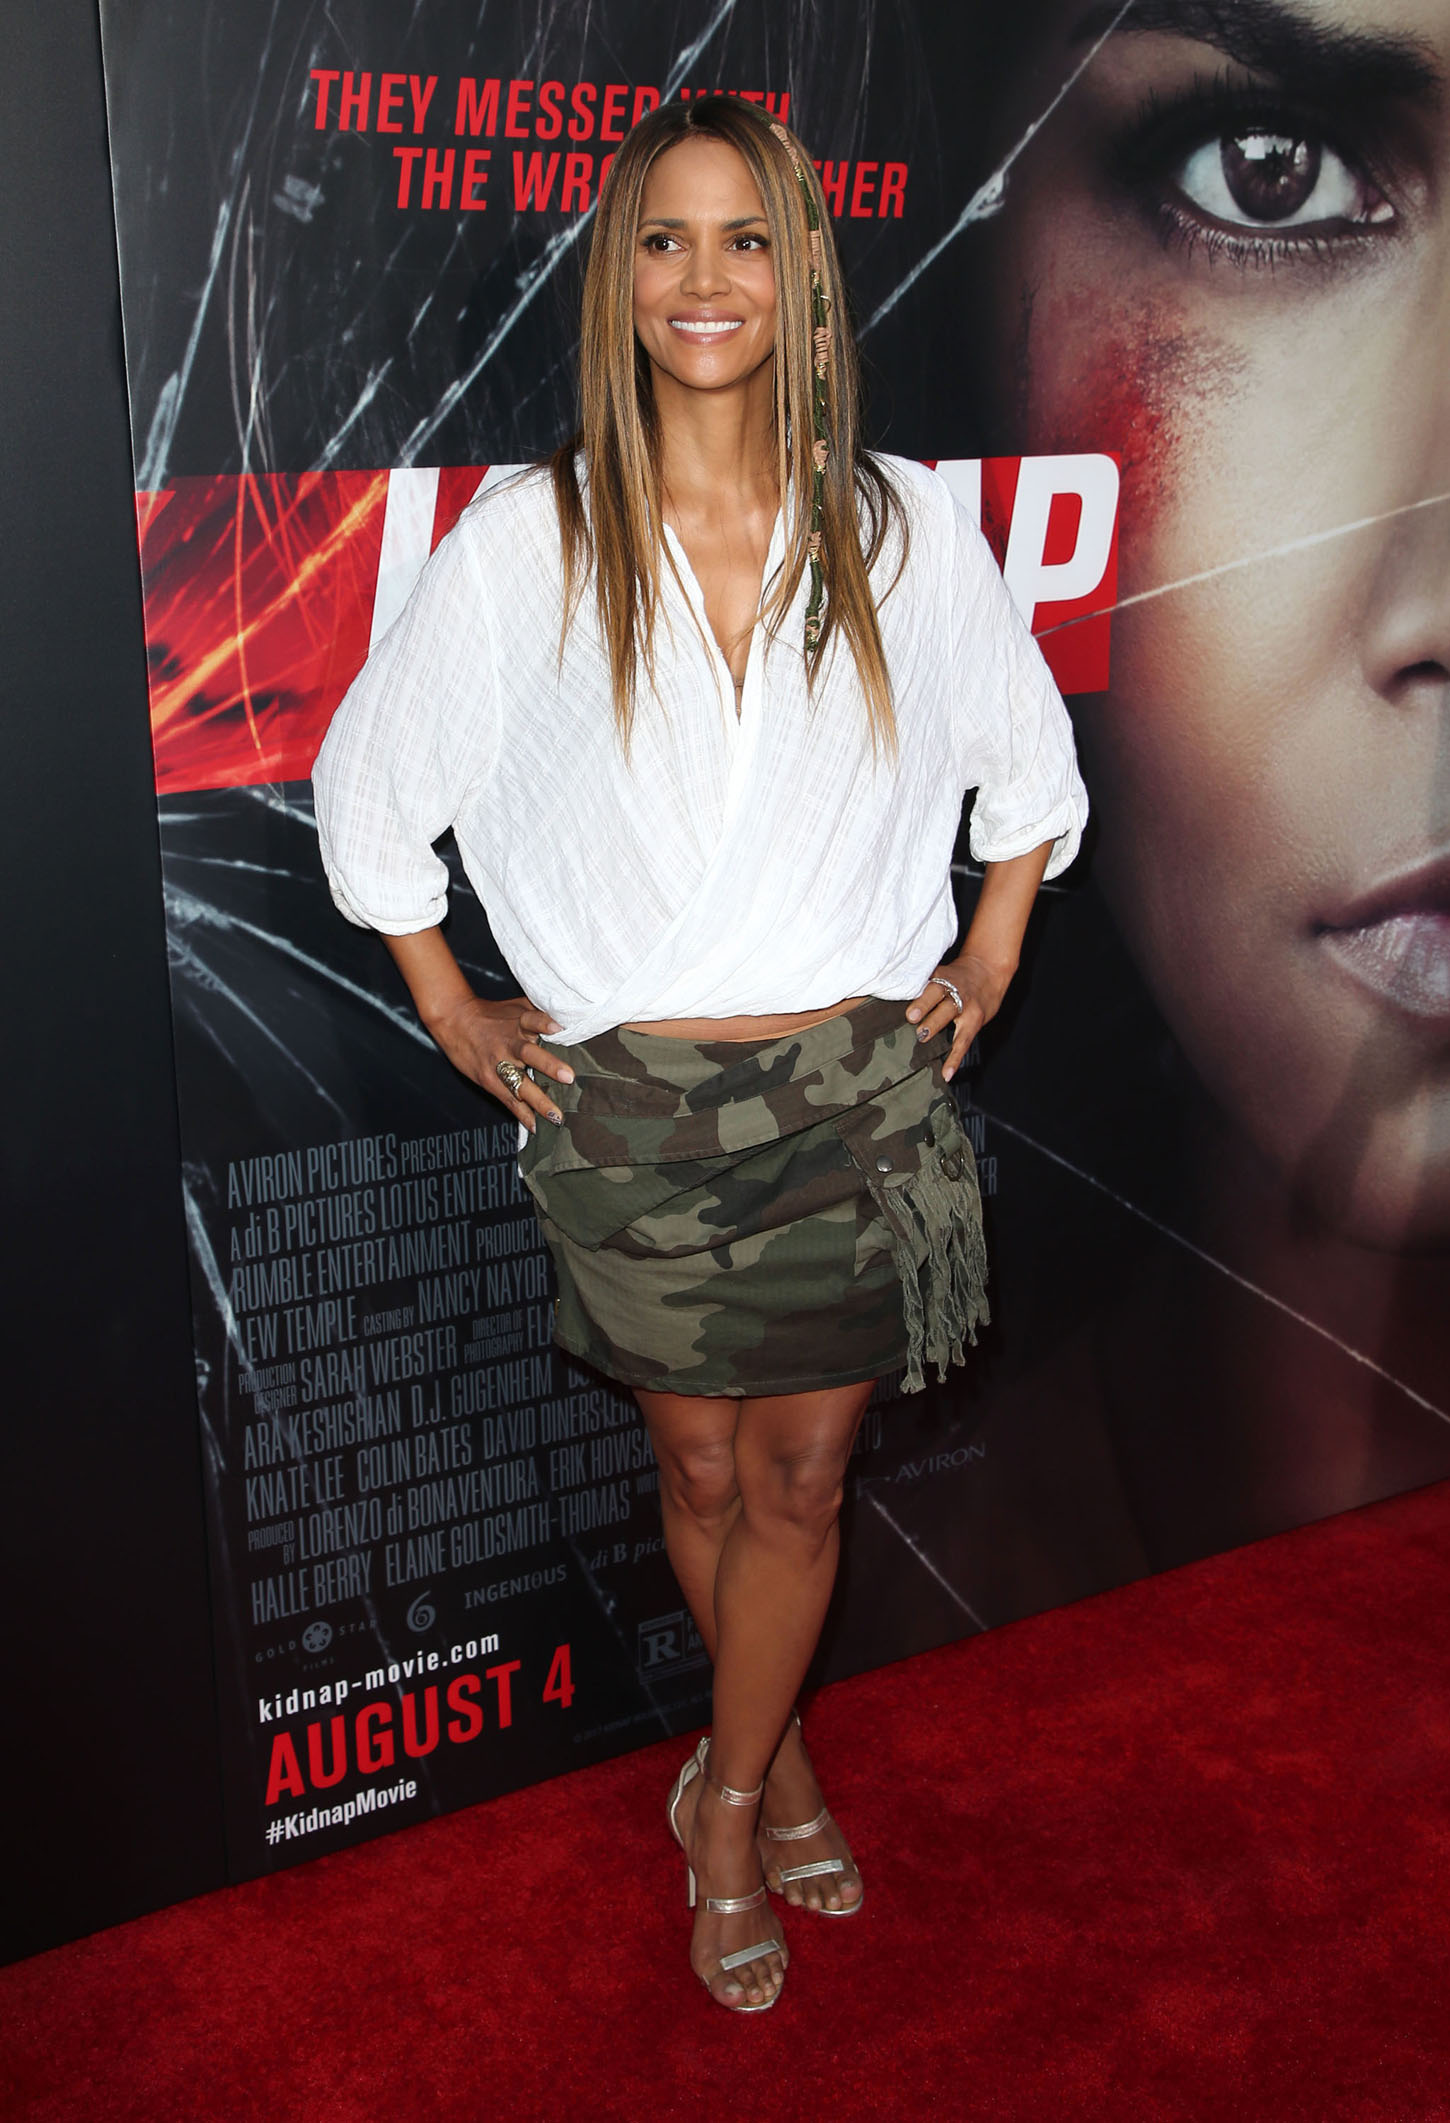 Stars attend the 'Kidnap' Premiere in Los Angeles, California. <P> Pictured: Halle Berry <B>Ref: SPL1548607  310717  </B><BR/> Picture by: AdMedia / Splash News<BR/> </P><P> <B>Splash News and Pictures</B><BR/> Los Angeles:310-821-2666<BR/> New York:212-619-2666<BR/> London:870-934-2666<BR/> <span id=